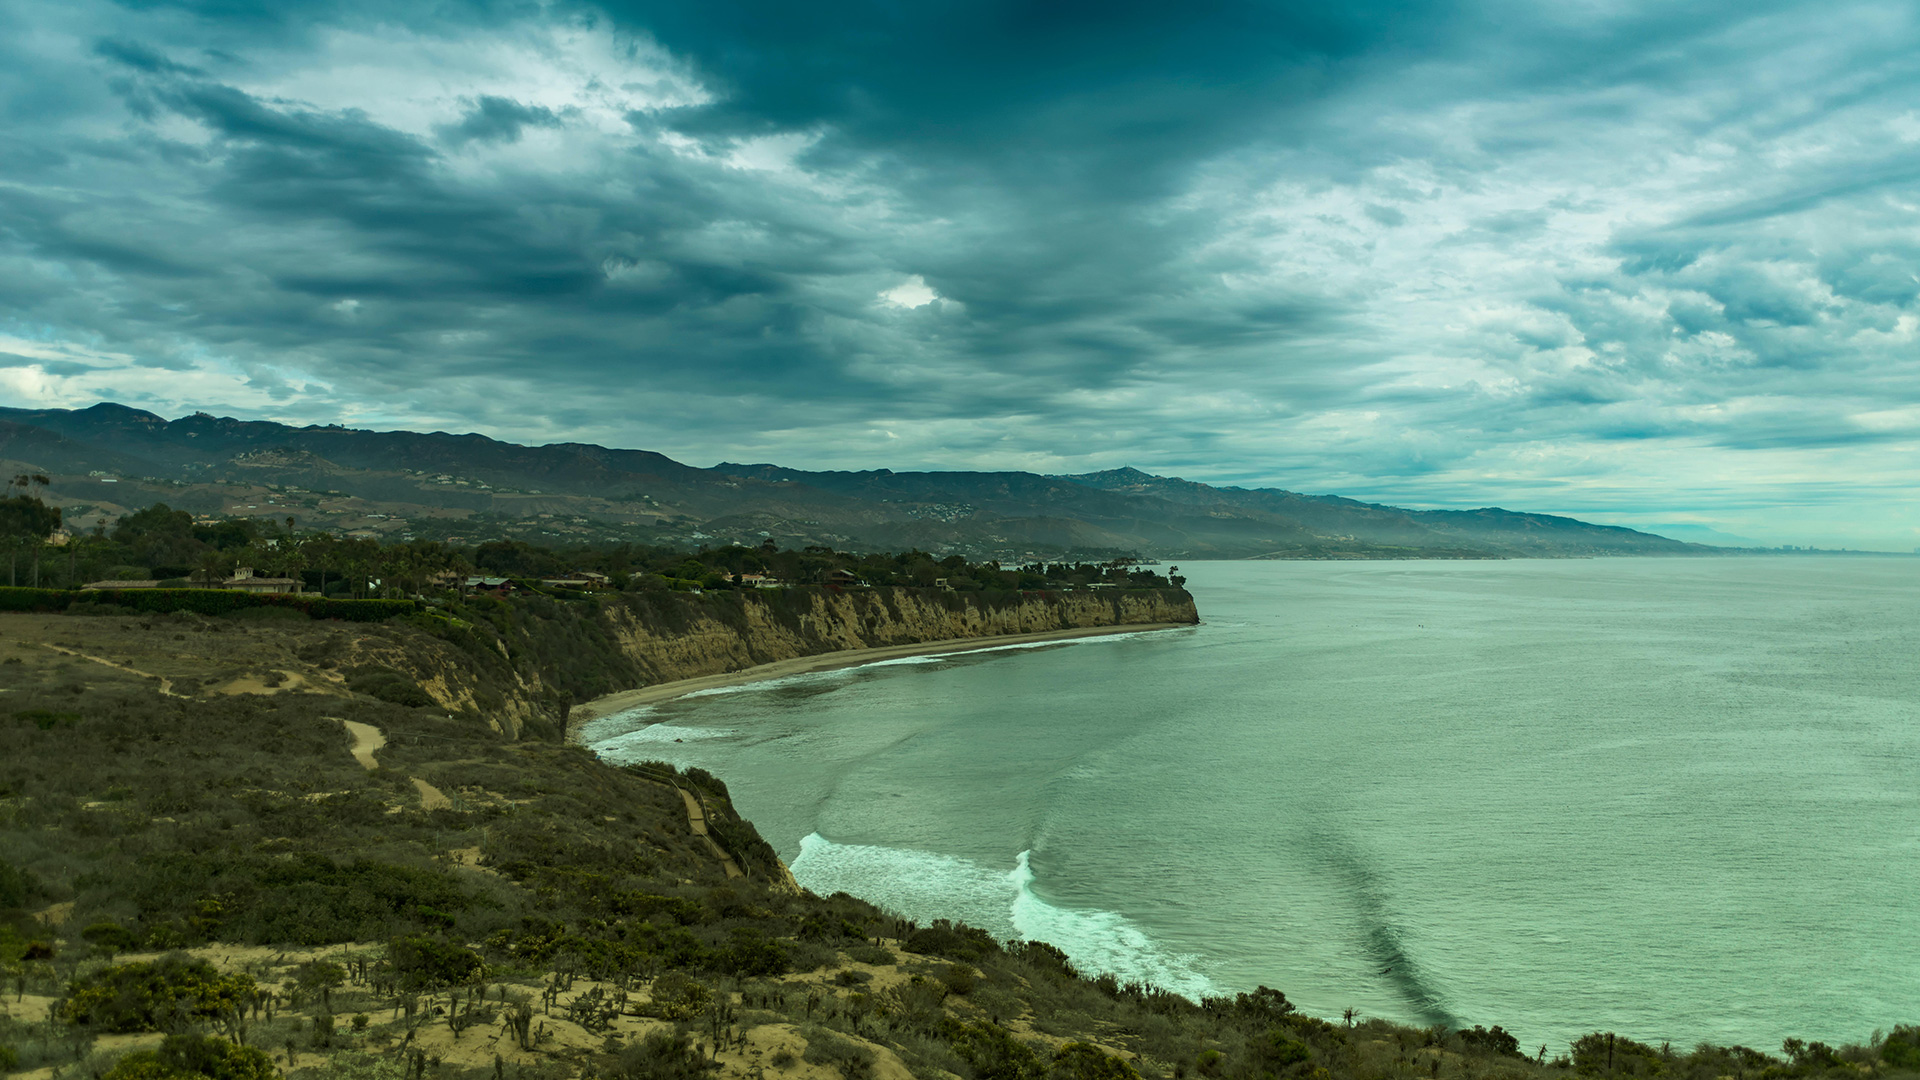 Point Dume, on the coast of Malibu, CA.